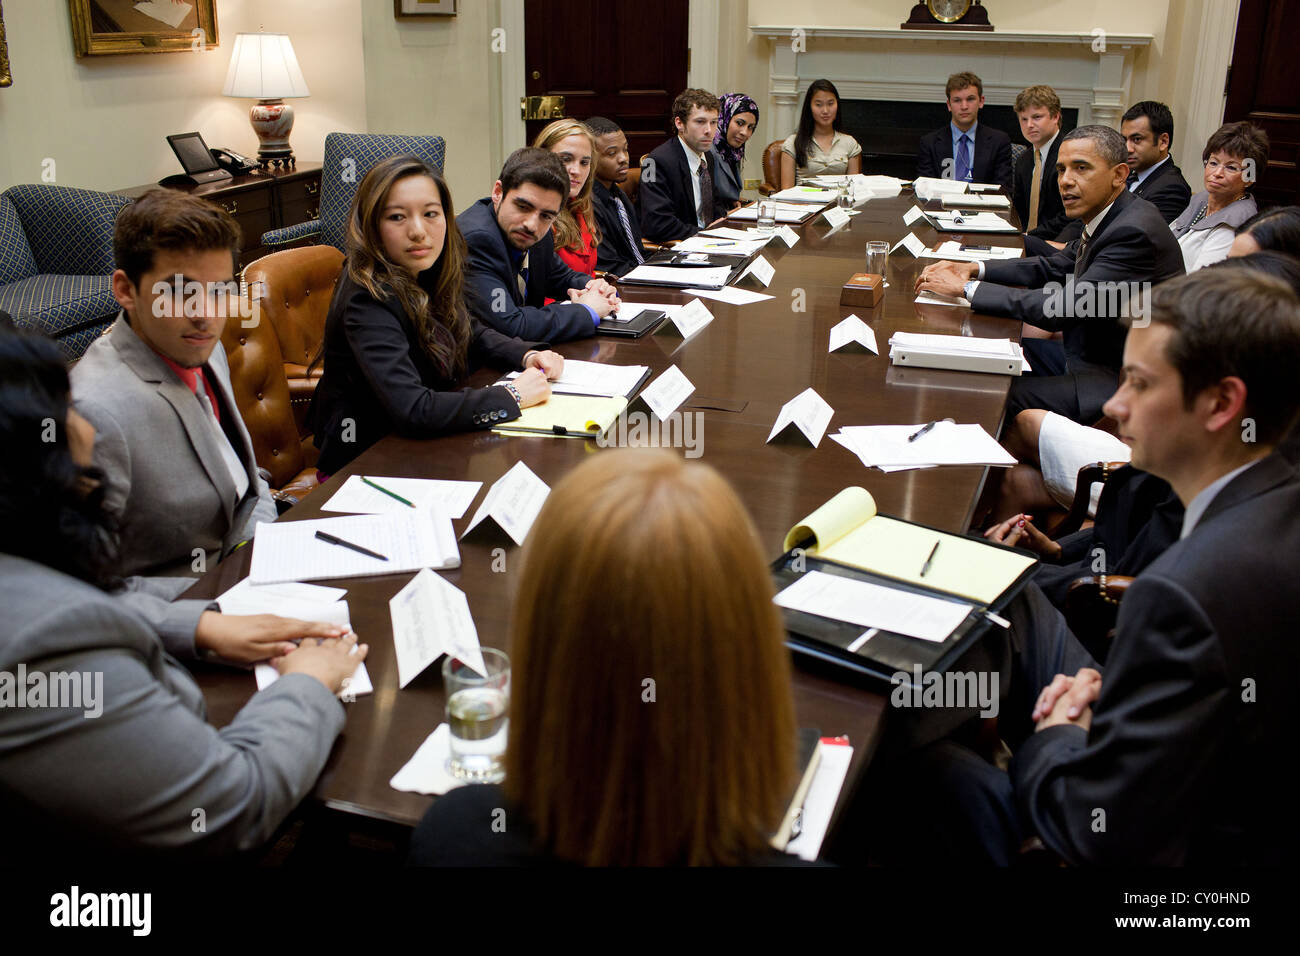 US President Barack Obama meets with young leaders for a Youth Roundtable June 6, 2011 in the Roosevelt Room of - Stock Image